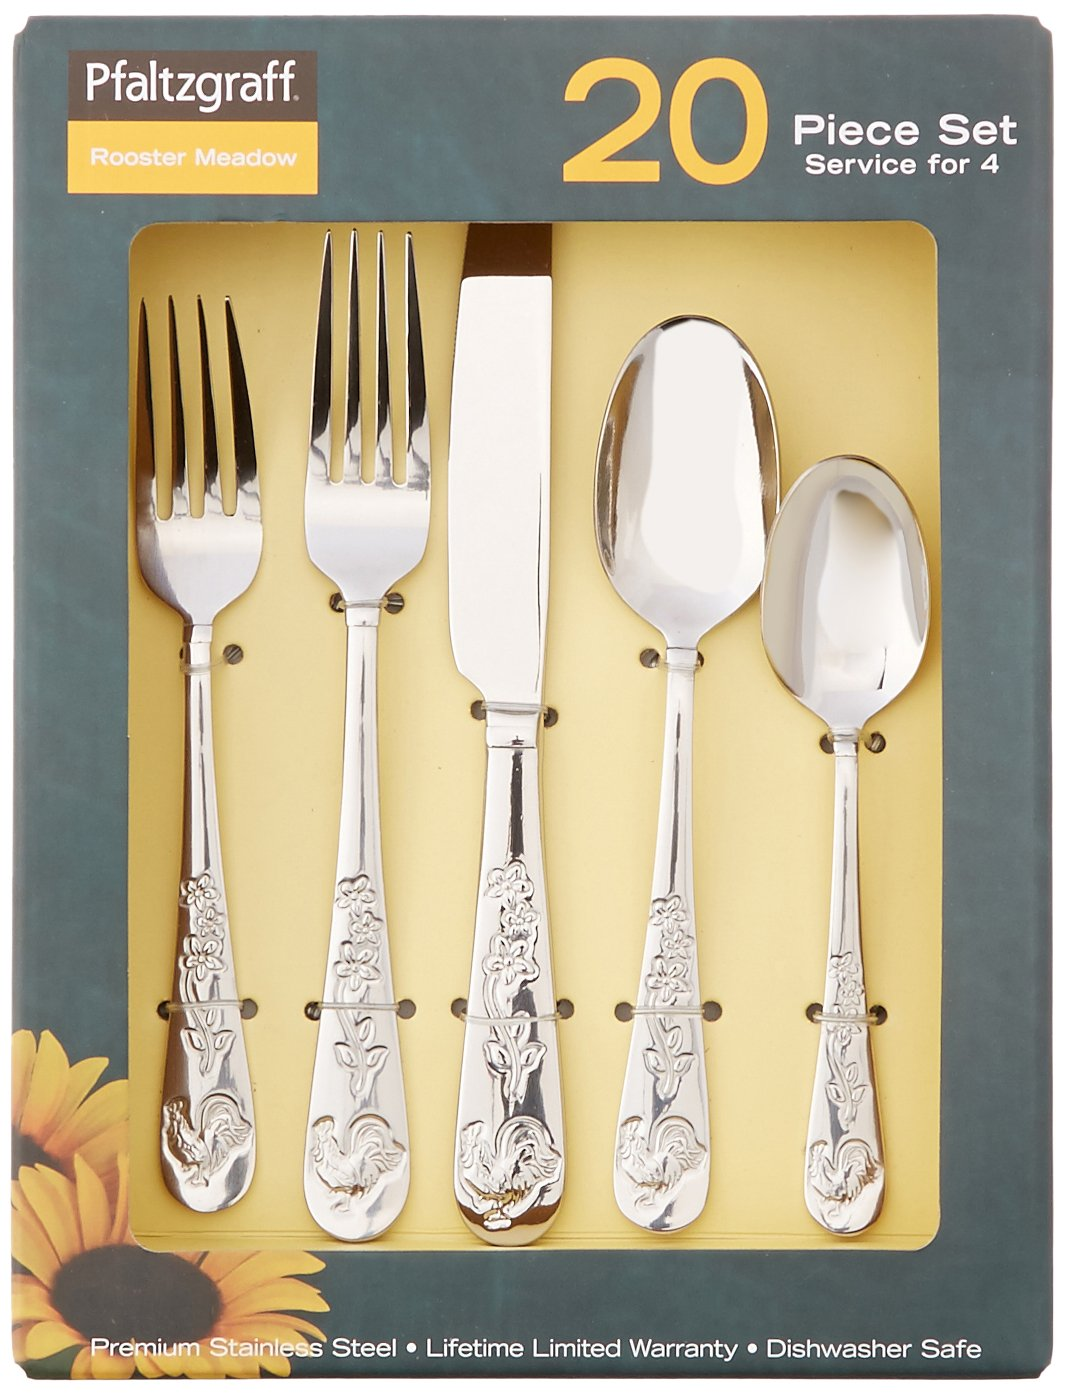 Amazon.com | Pfaltzgraff 5133114 Rooster Meadow 20-Piece Stainless Steel Flatware Set Service for 4 Flatware & Amazon.com | Pfaltzgraff 5133114 Rooster Meadow 20-Piece Stainless ...